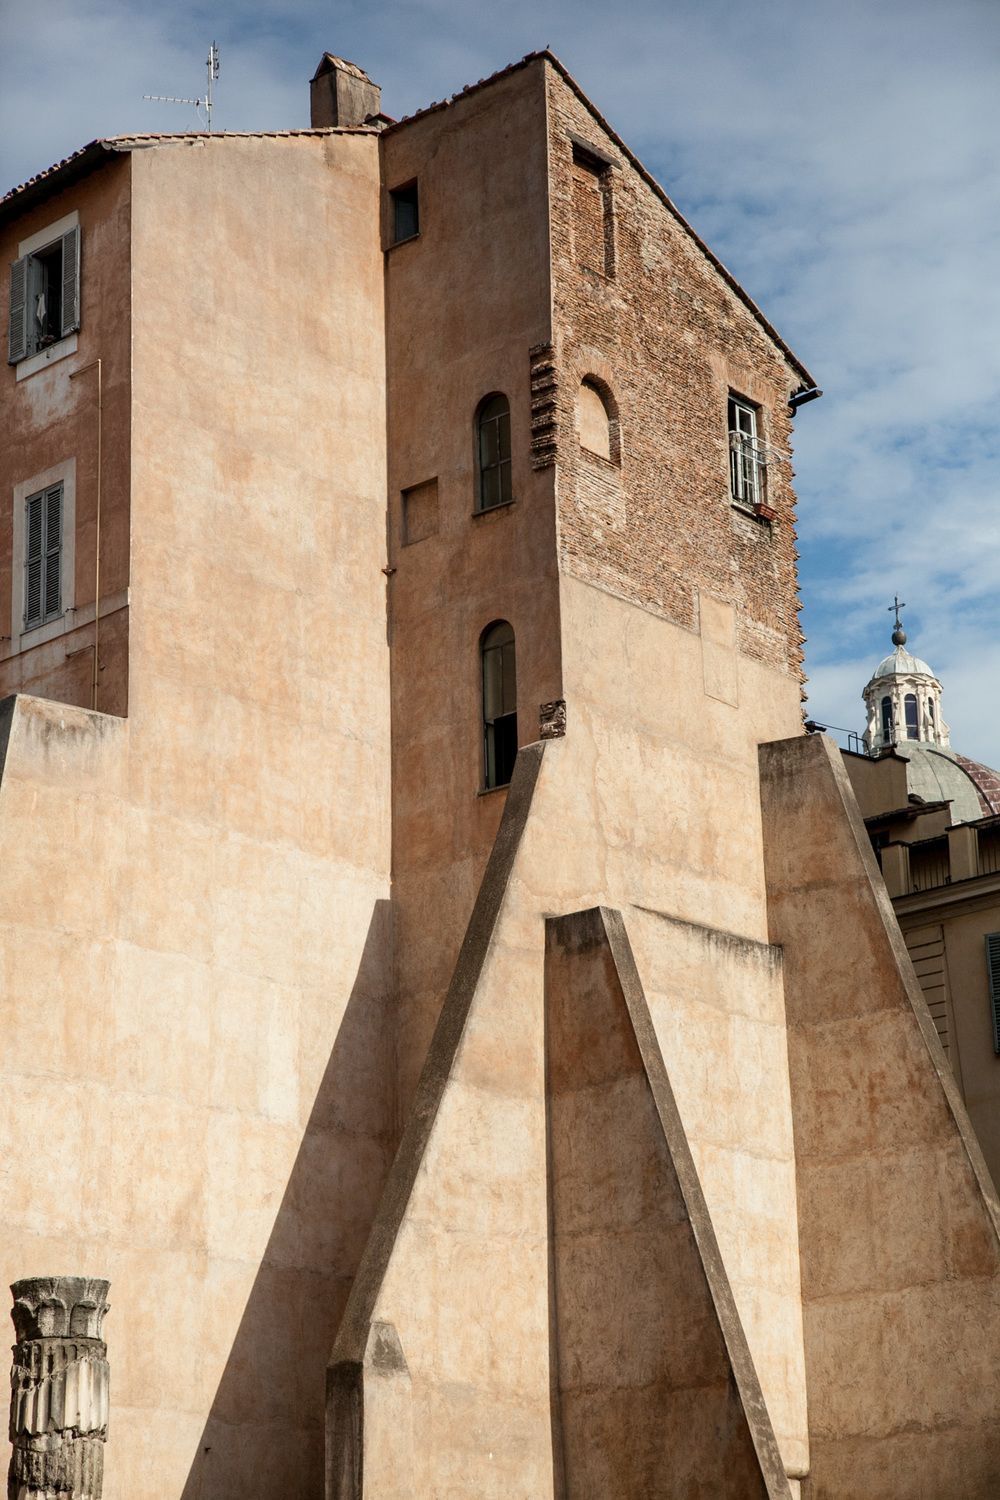 Rome's amazing buildings, wherever you turn your head, there is something to see.